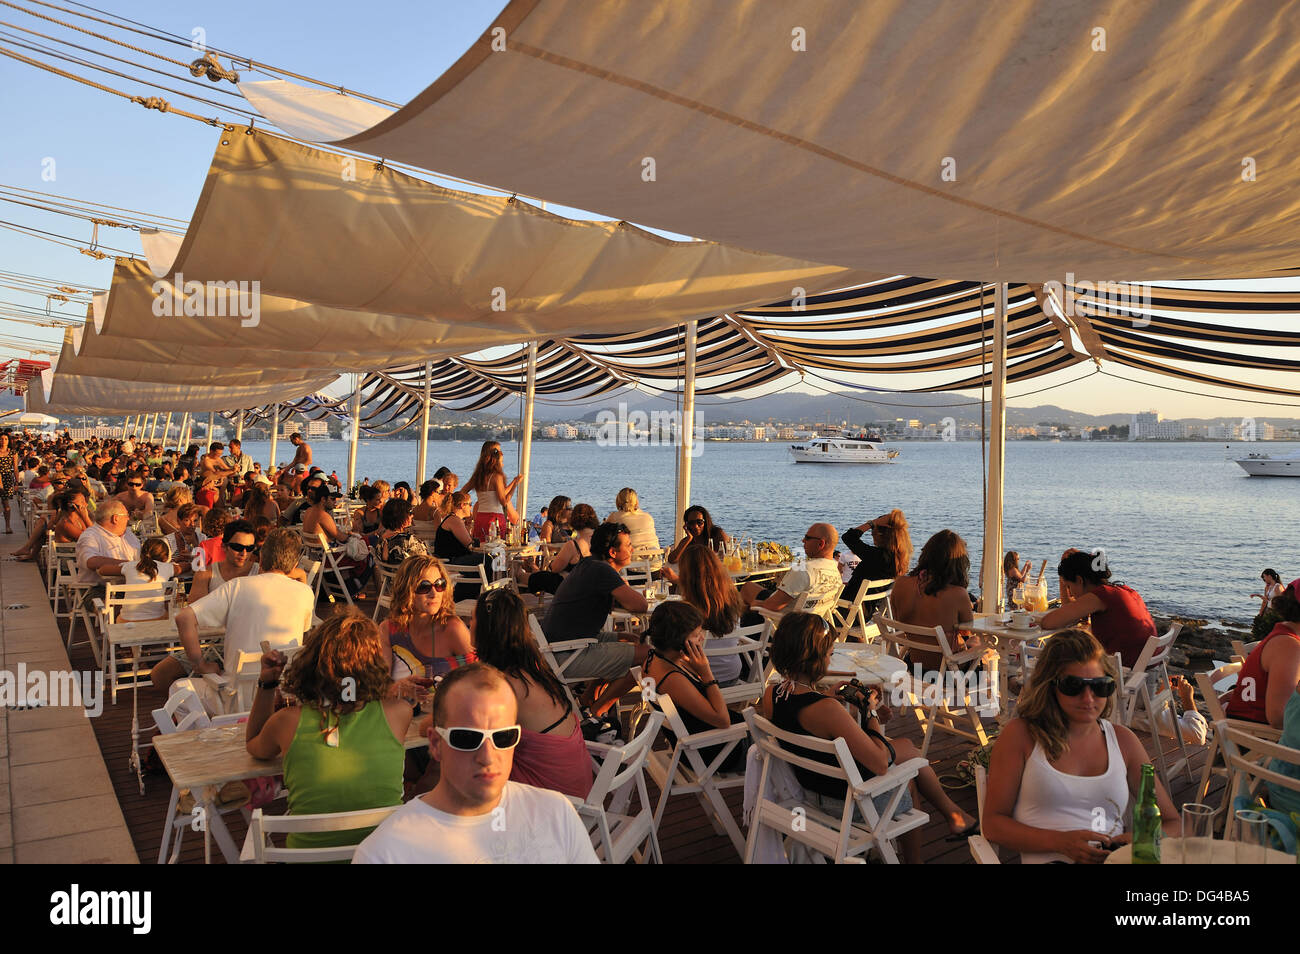 Panoramic view of sunset at Cafe del Mar of Ibiza, Spain. - Stock Image